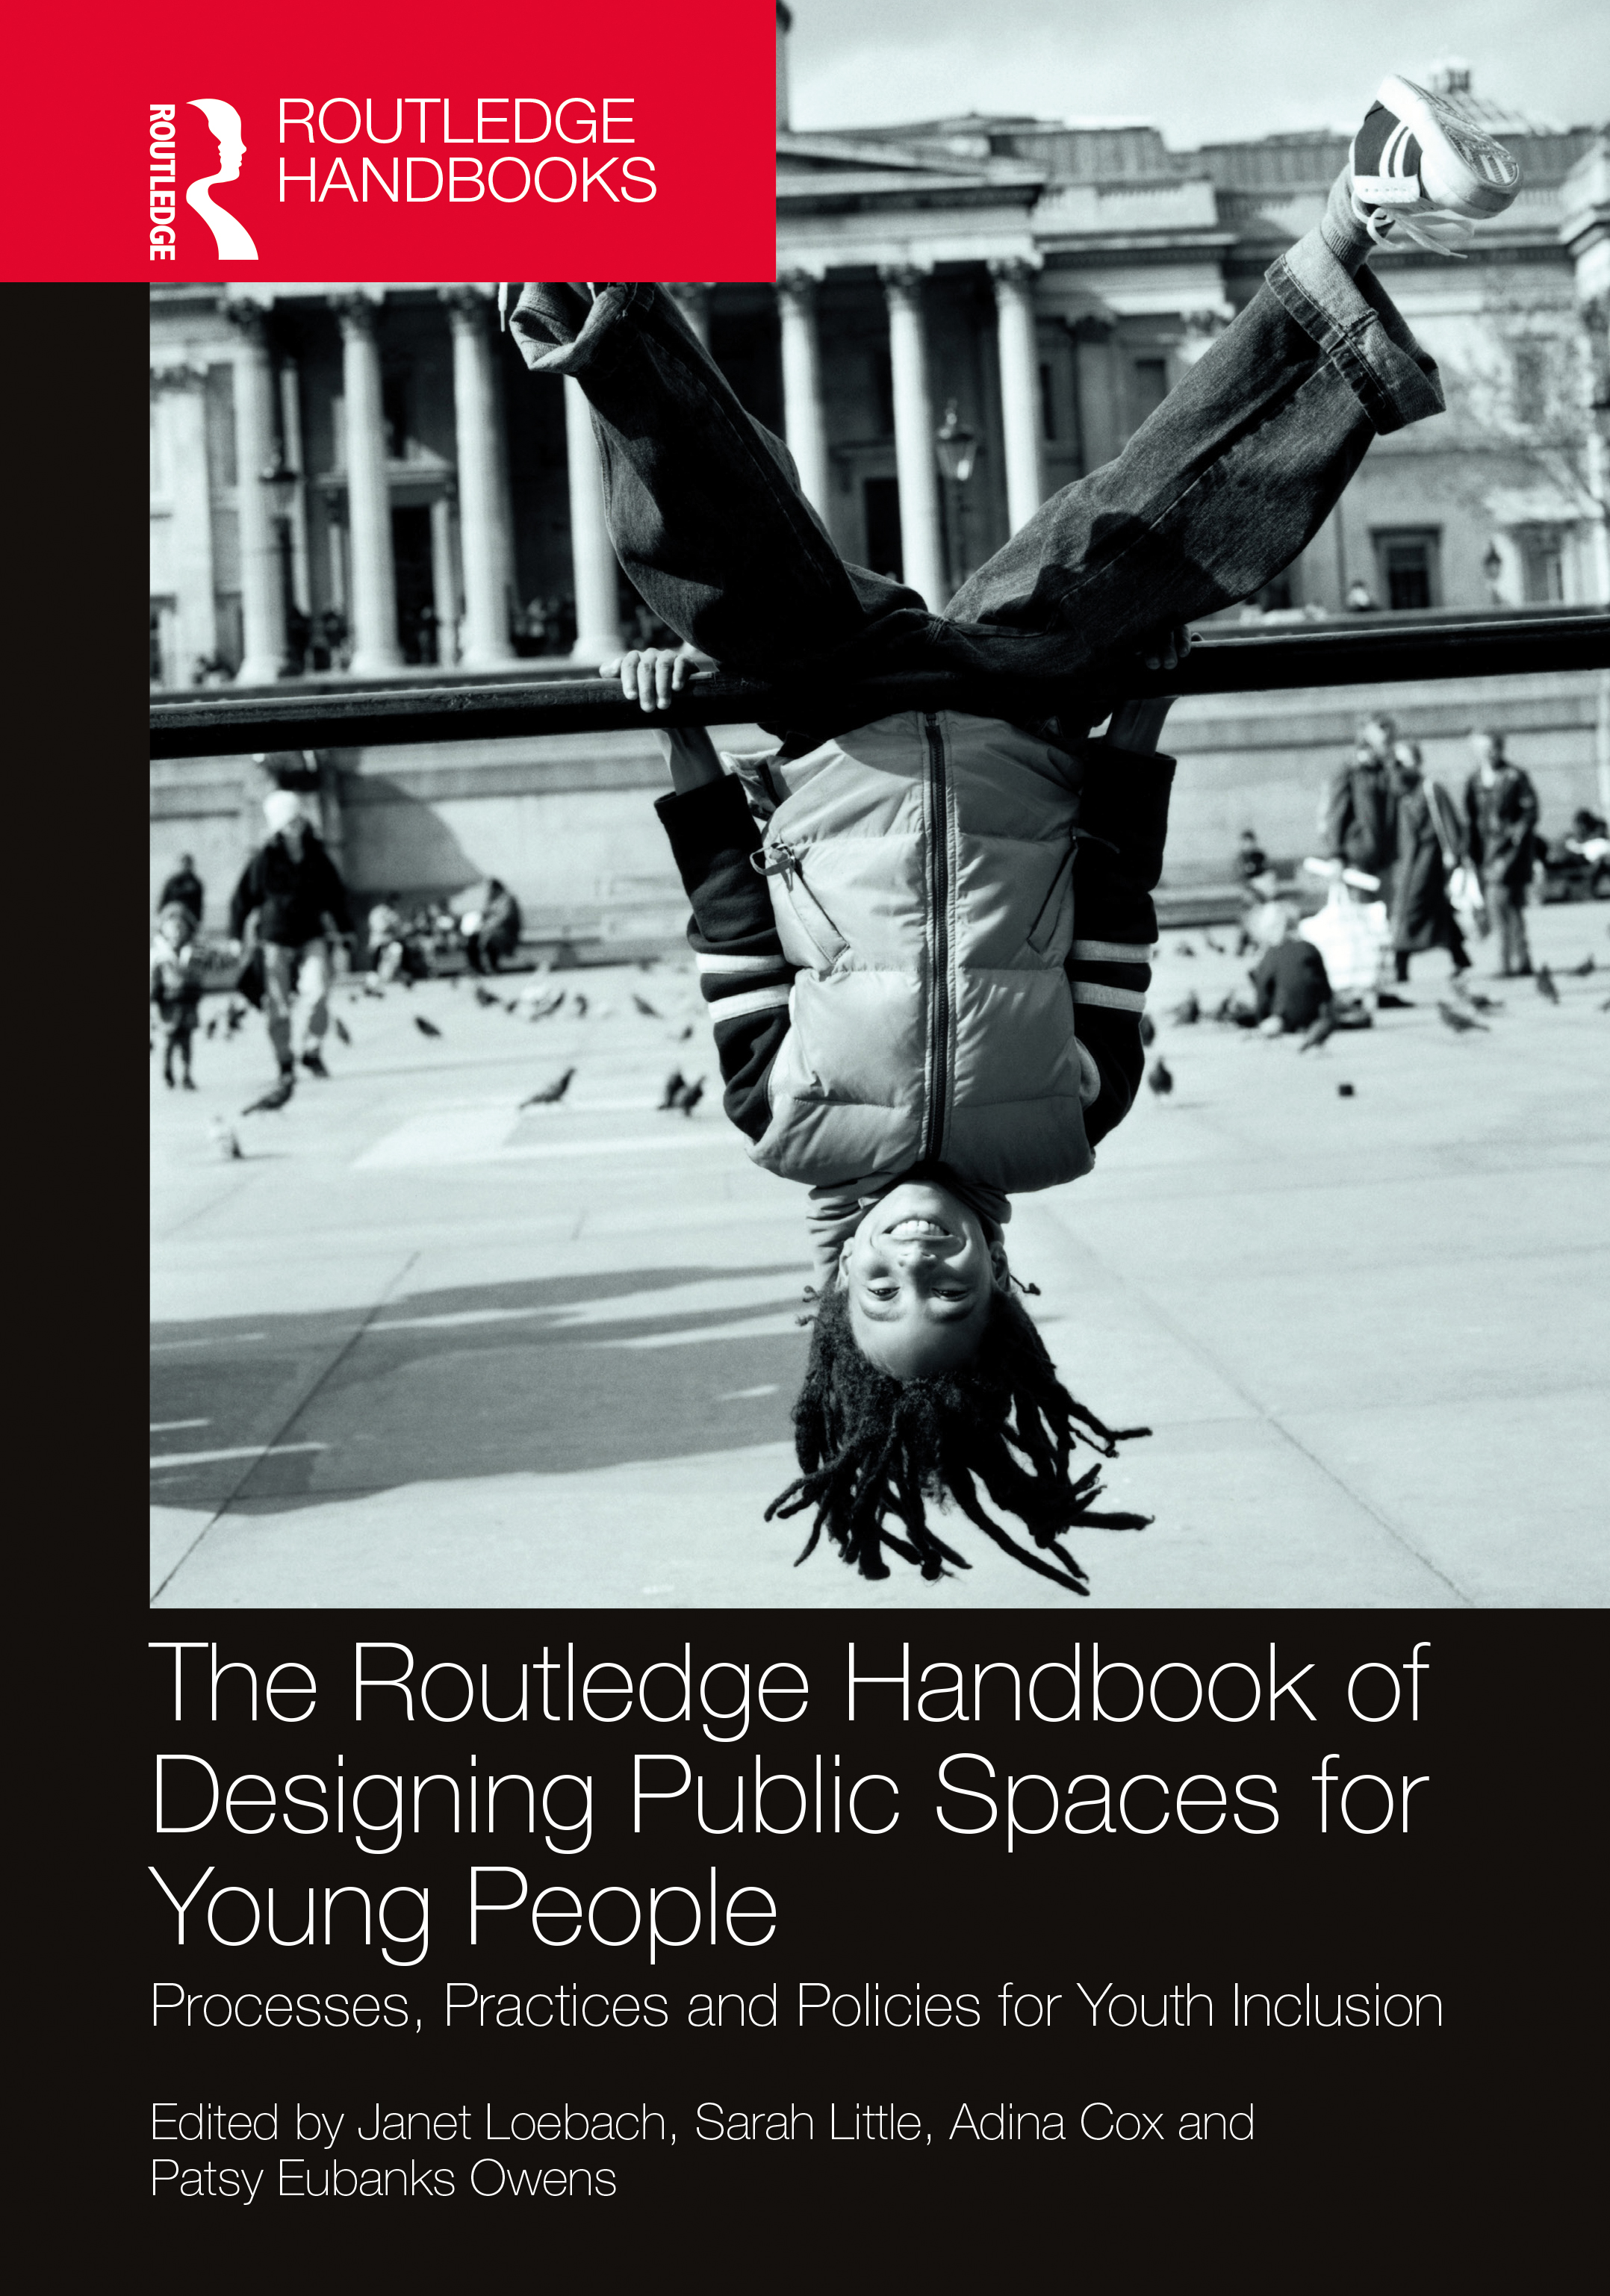 The Routledge Handbook of Designing Public Spaces for Young People: Processes, Practices and Policies for Youth Inclusion book cover